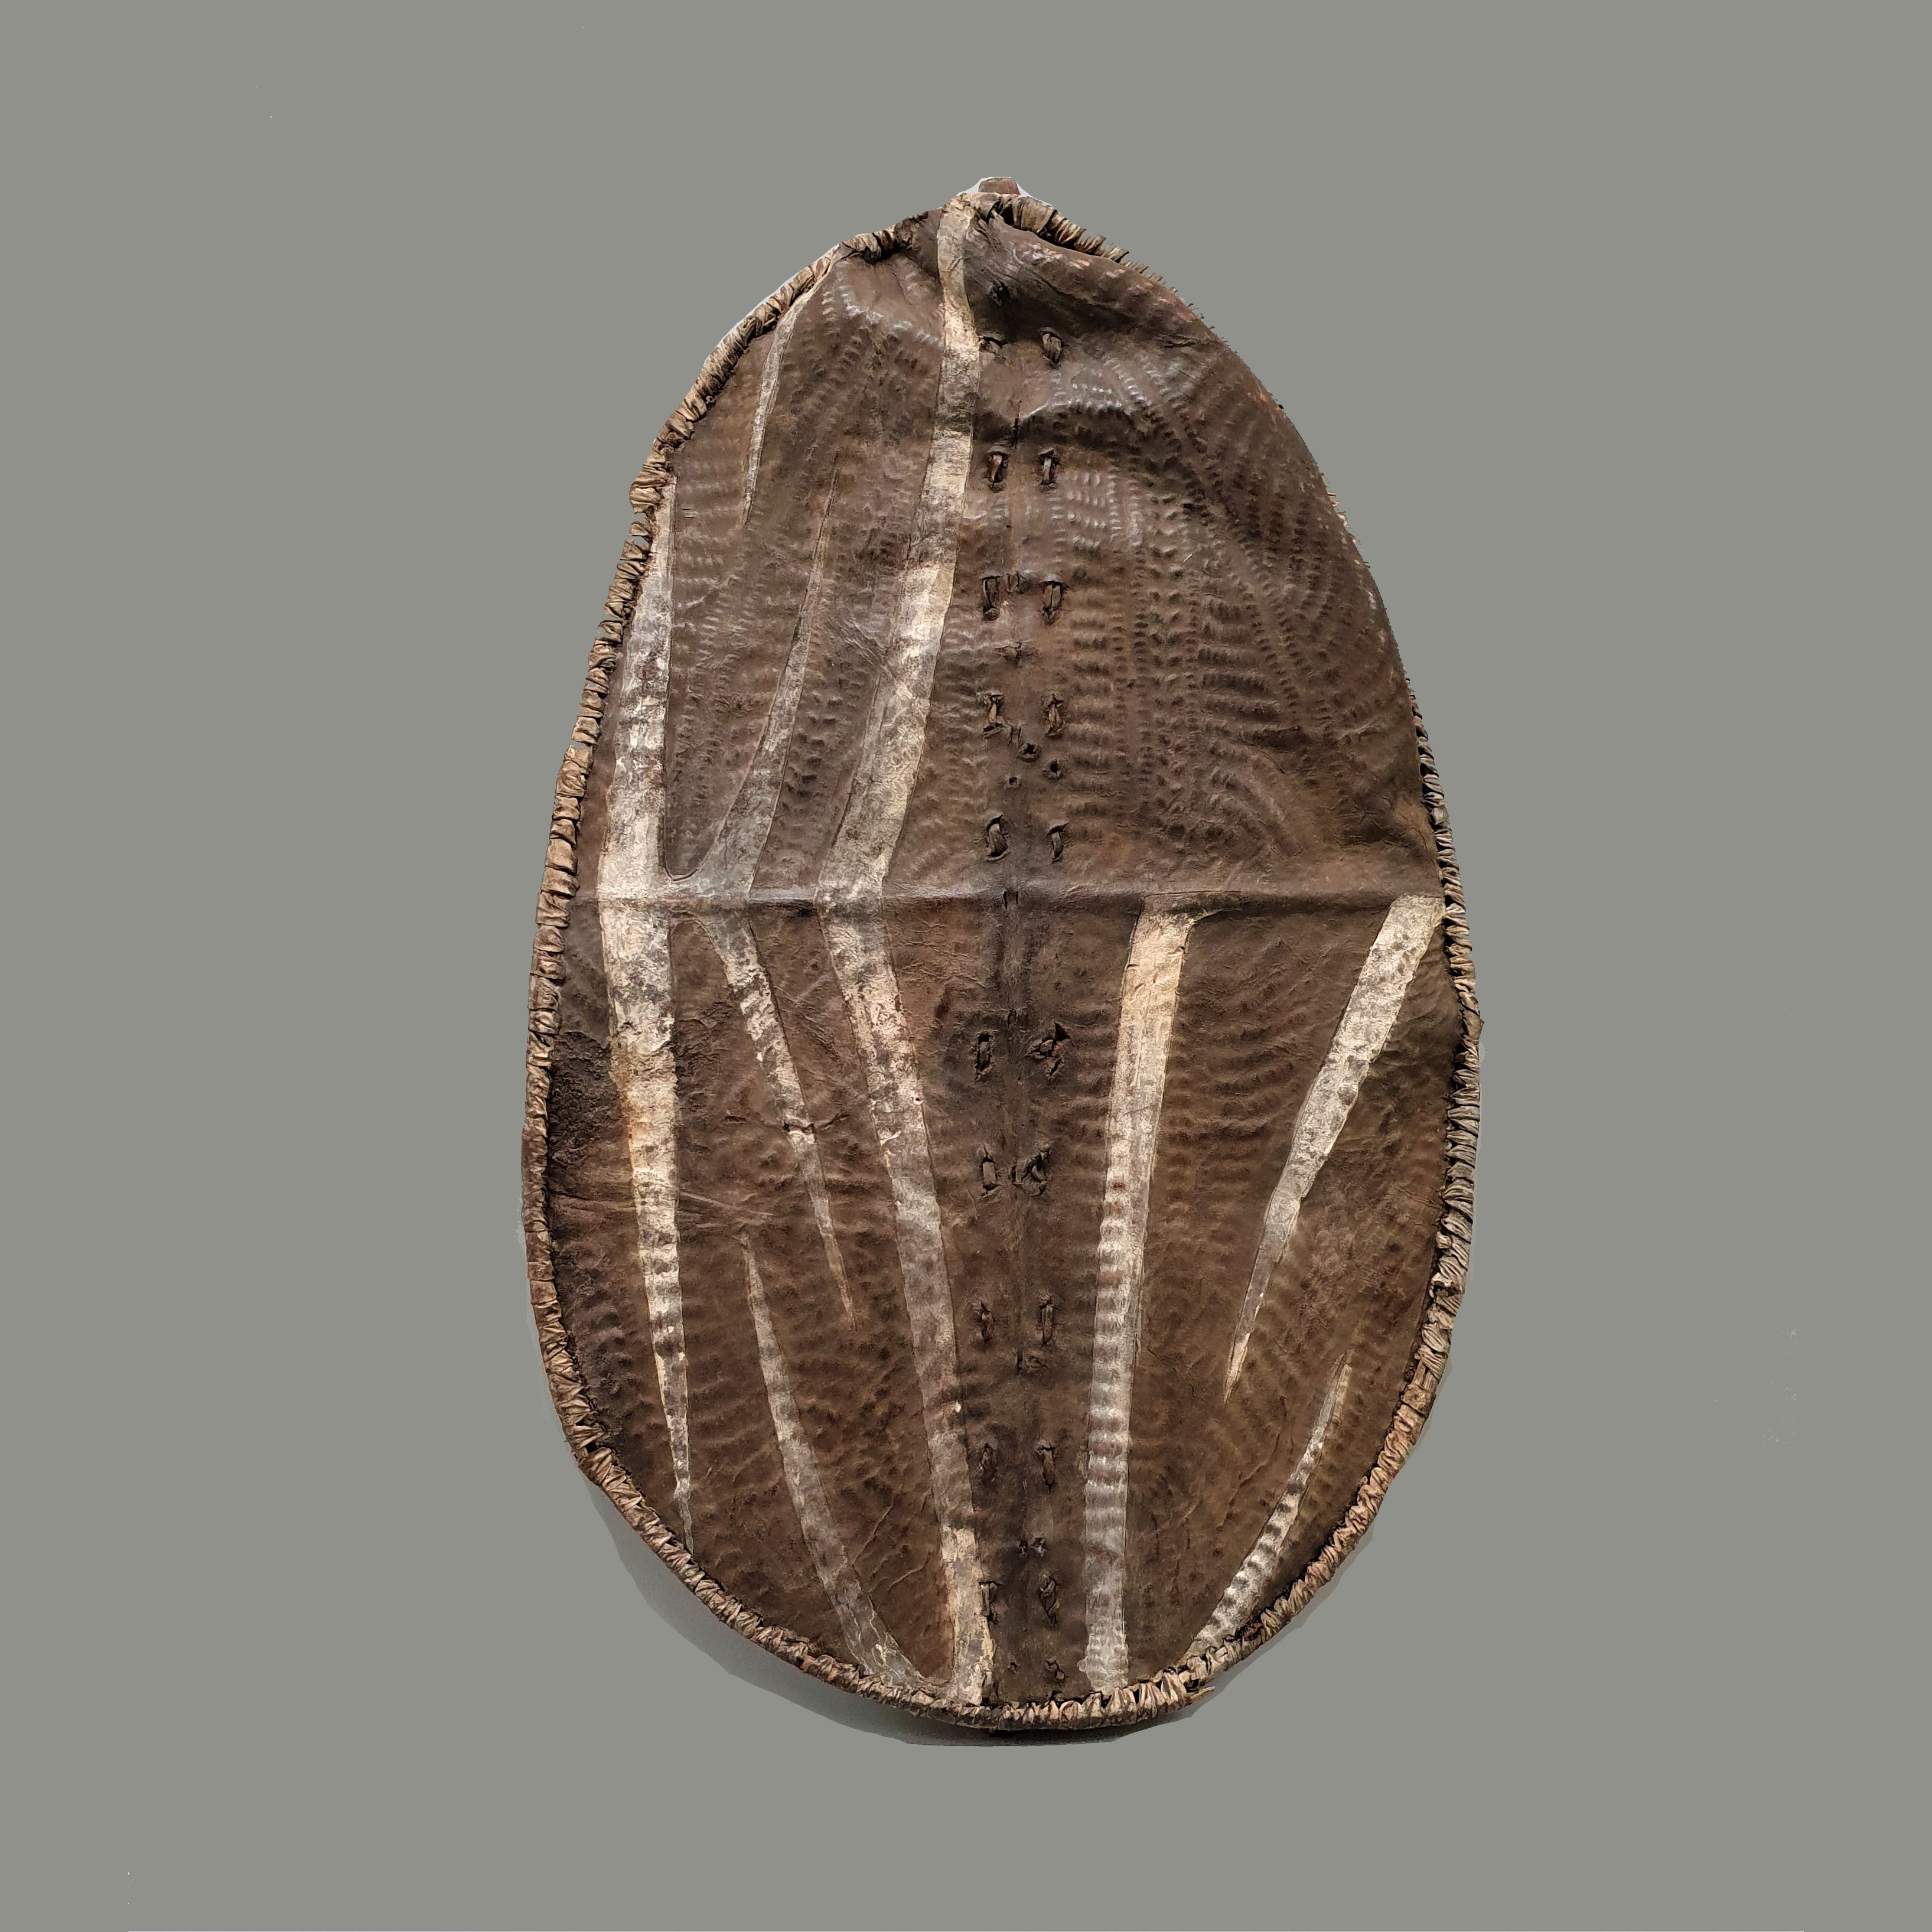 SD AN EMBOSSED LUO SHIELD FROM KENYA ( No 350 )